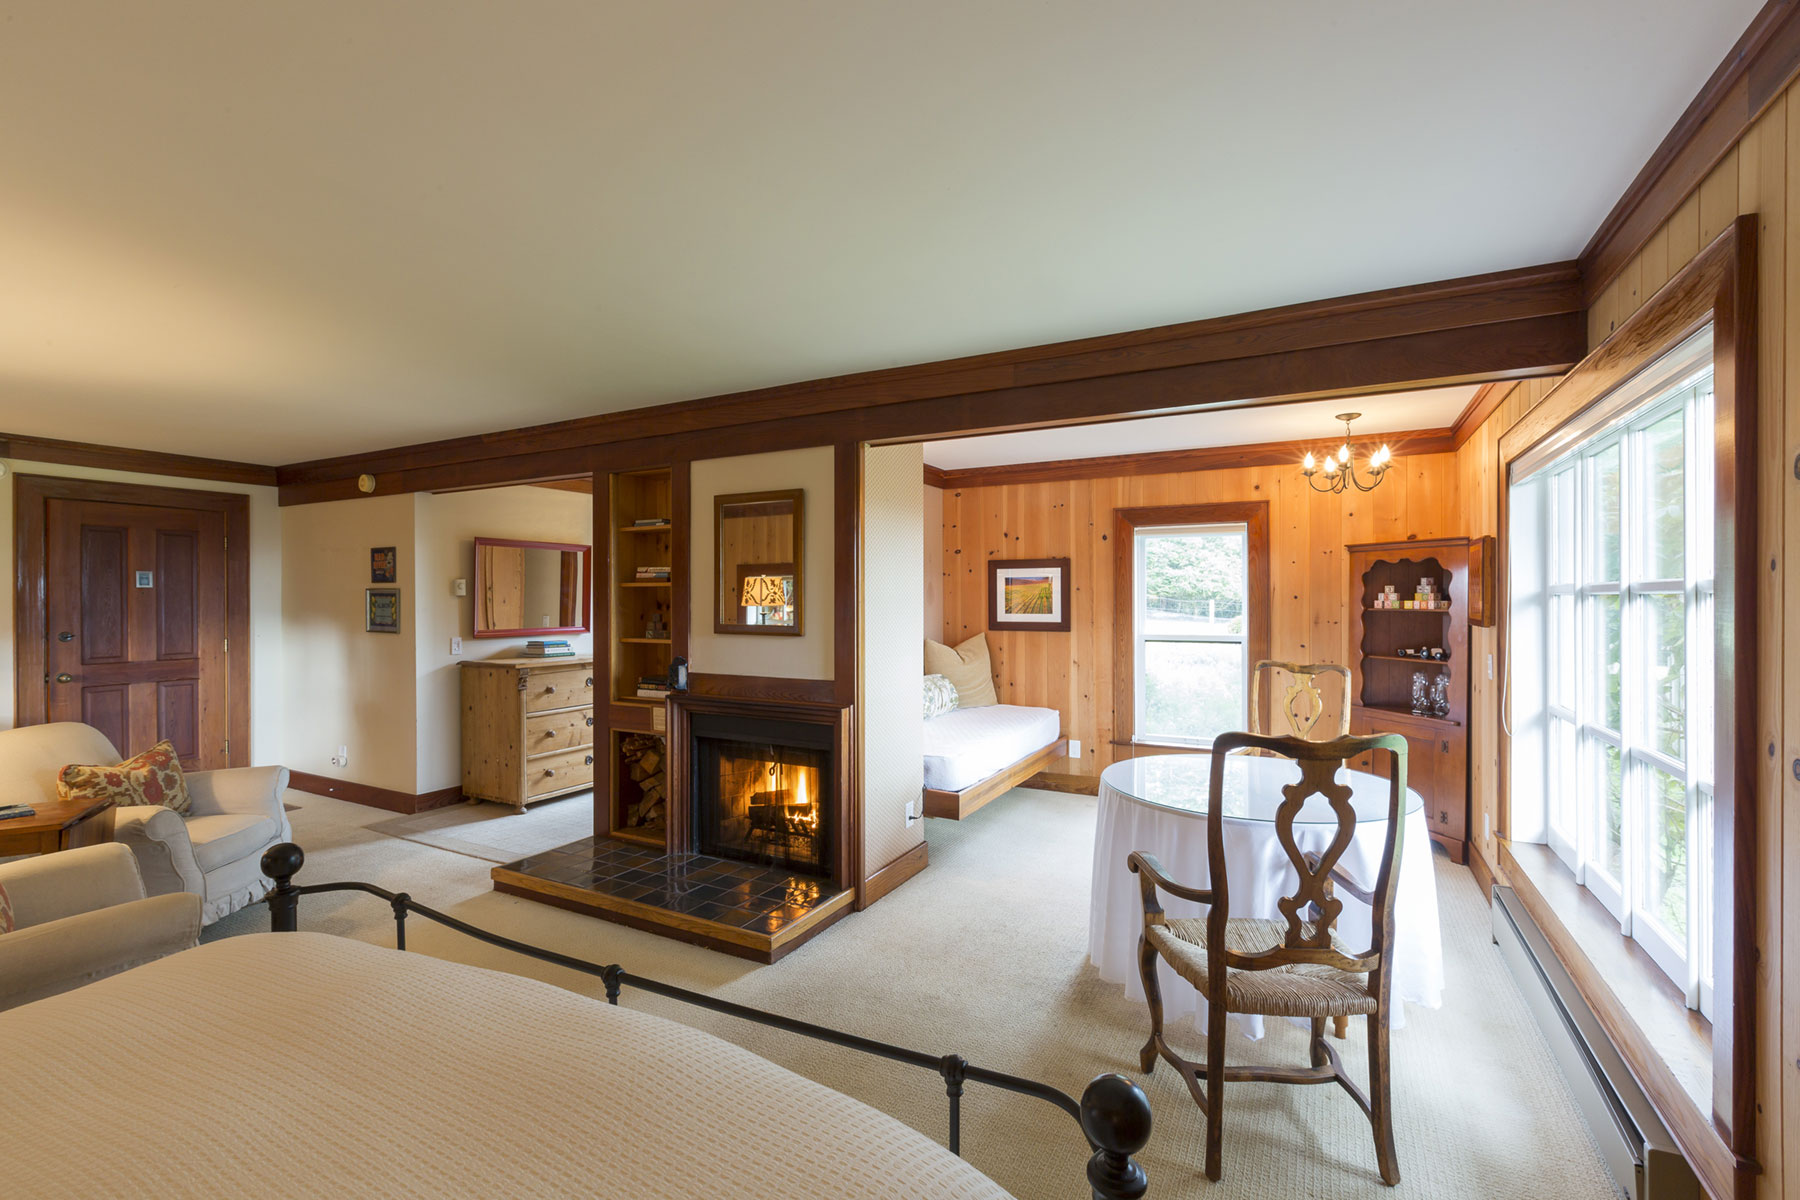 The Pinewood room with fireplace, seating area, and iron king bed